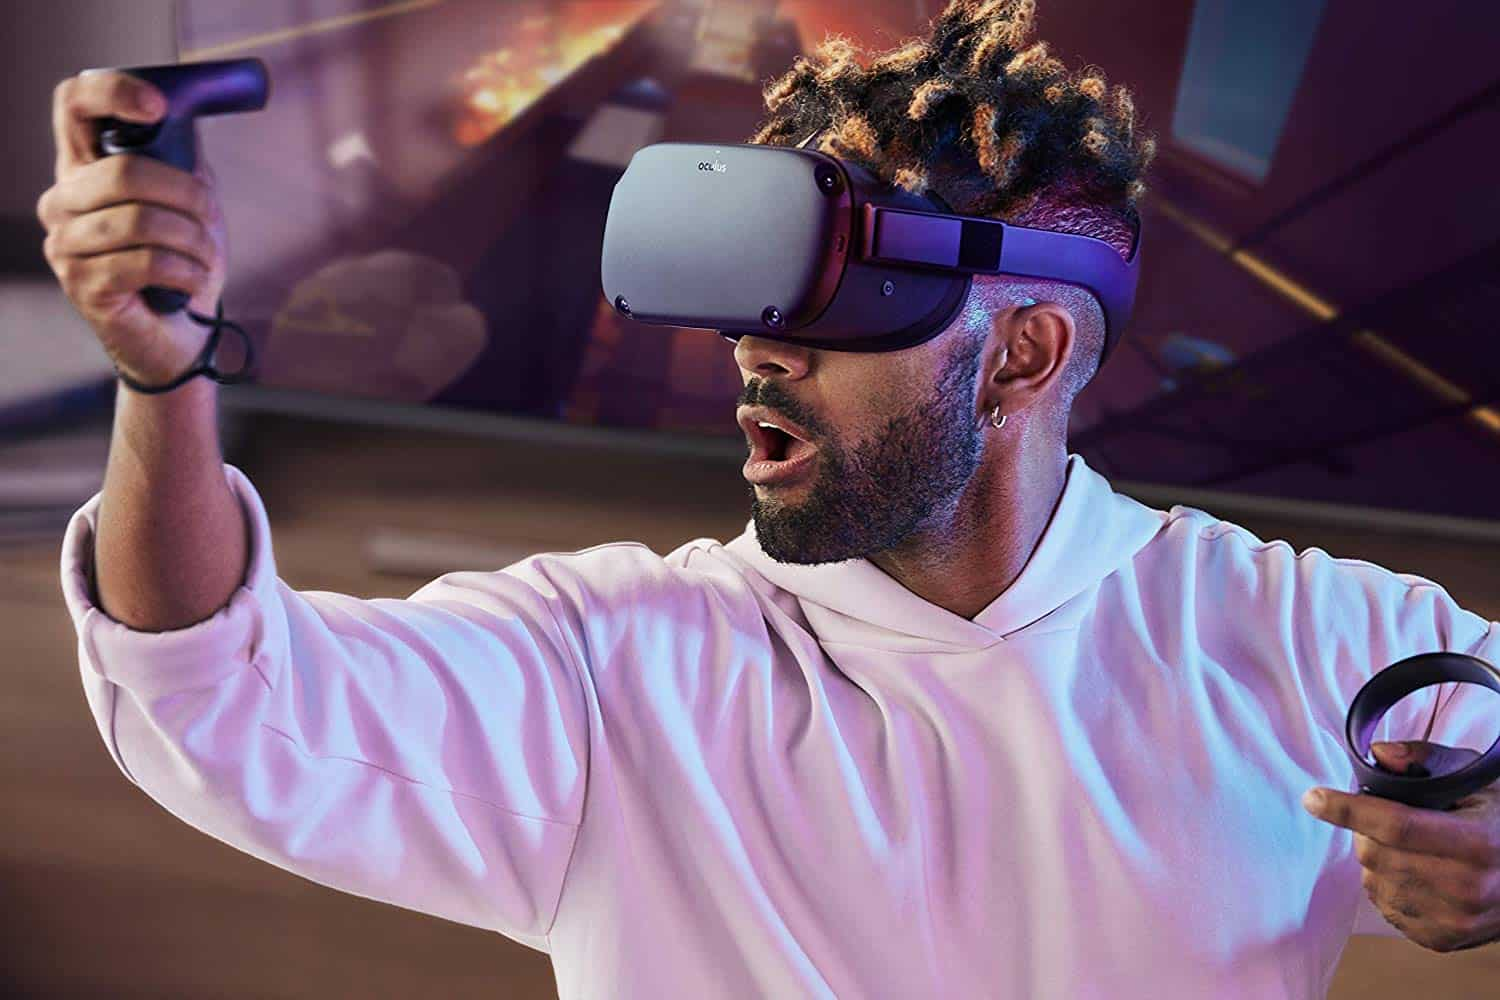 Oculus-quest-gaming-vr-bril